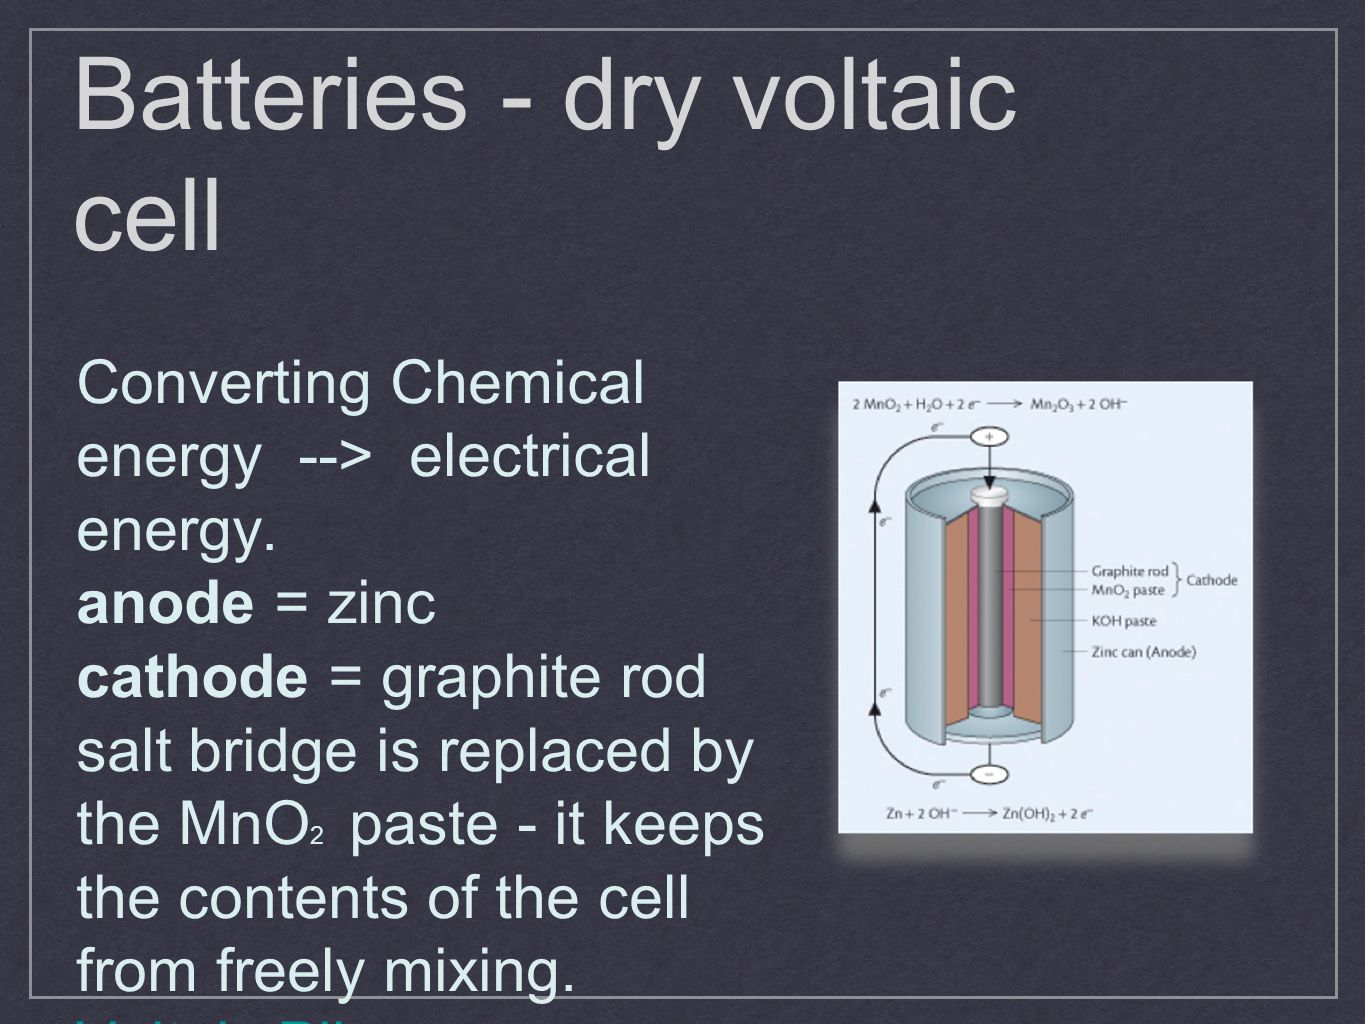 Batteries - dry voltaic cell